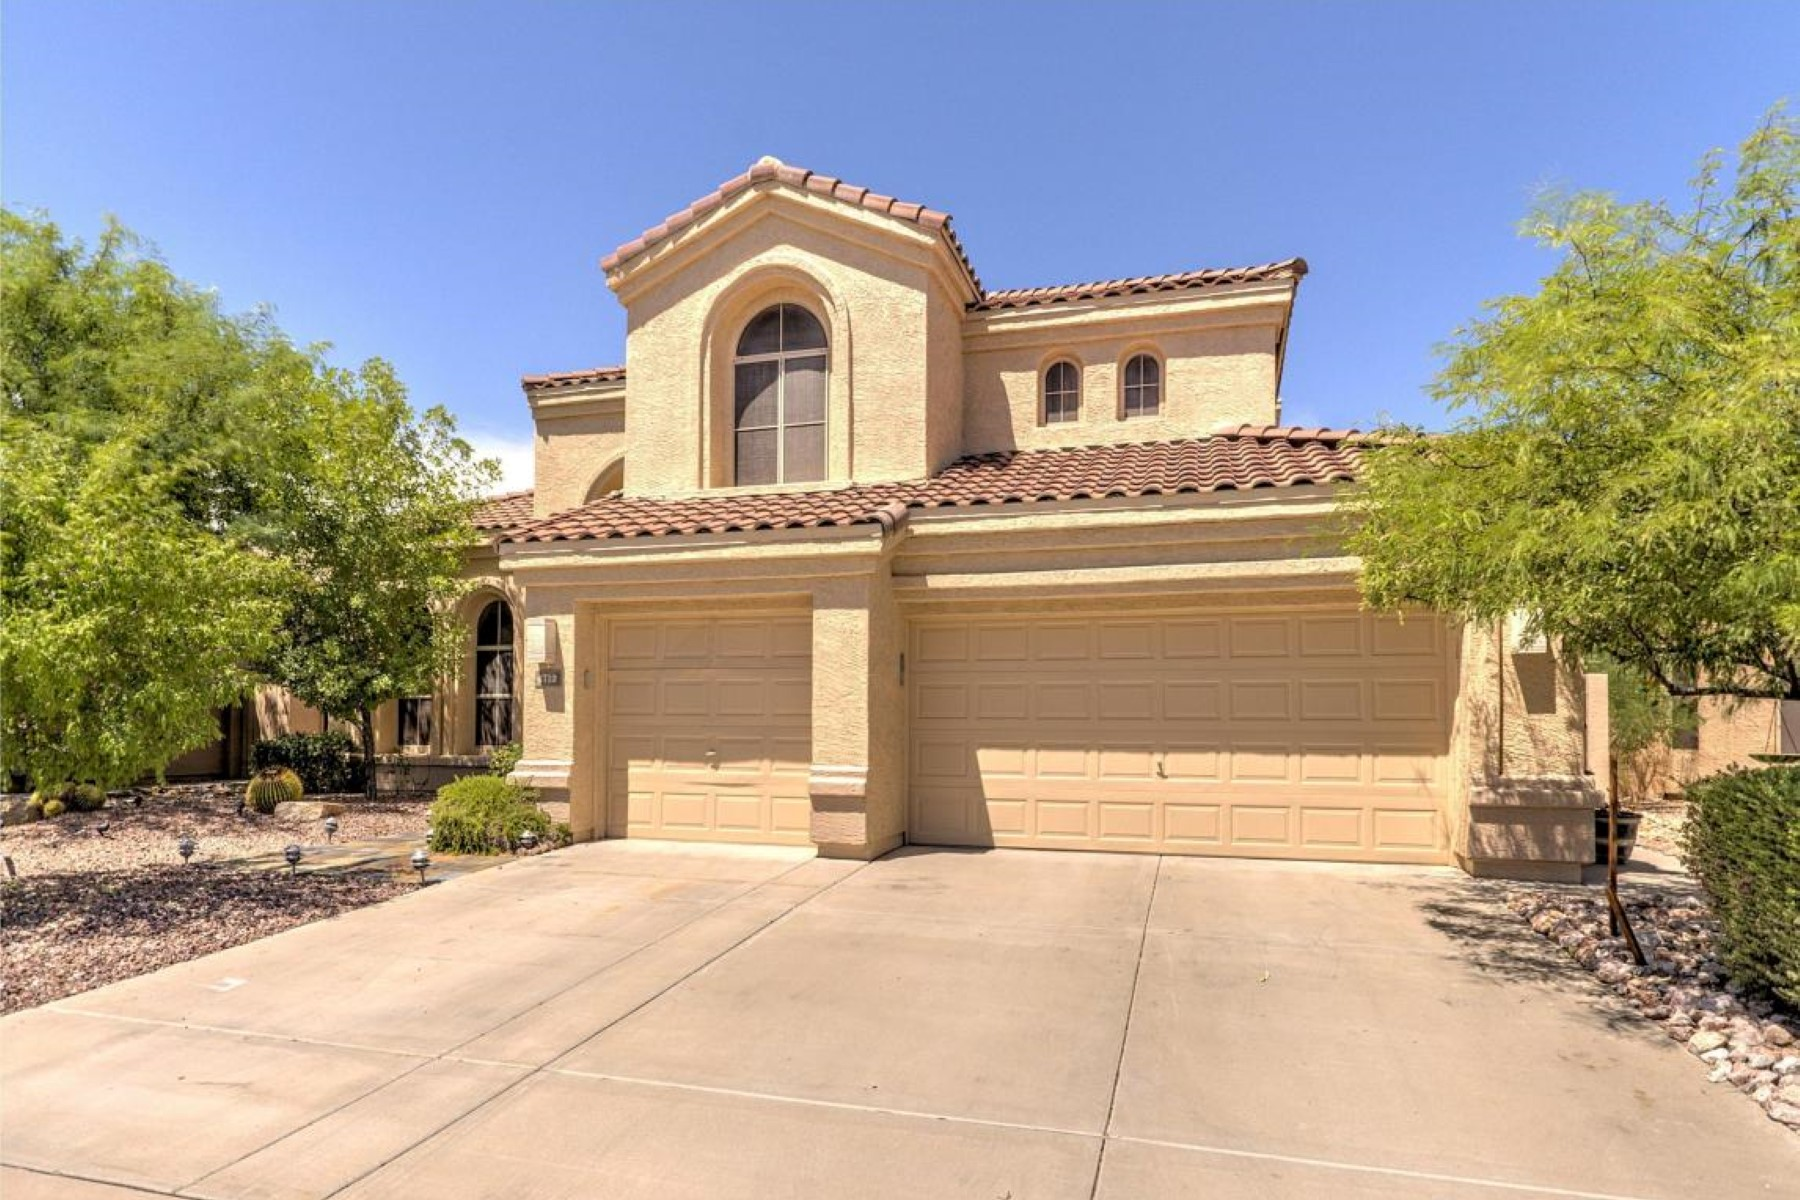 Vivienda unifamiliar por un Venta en Lovely two story home in Desert Ridge 4712 E Williams Dr Phoenix, Arizona, 85050 Estados Unidos